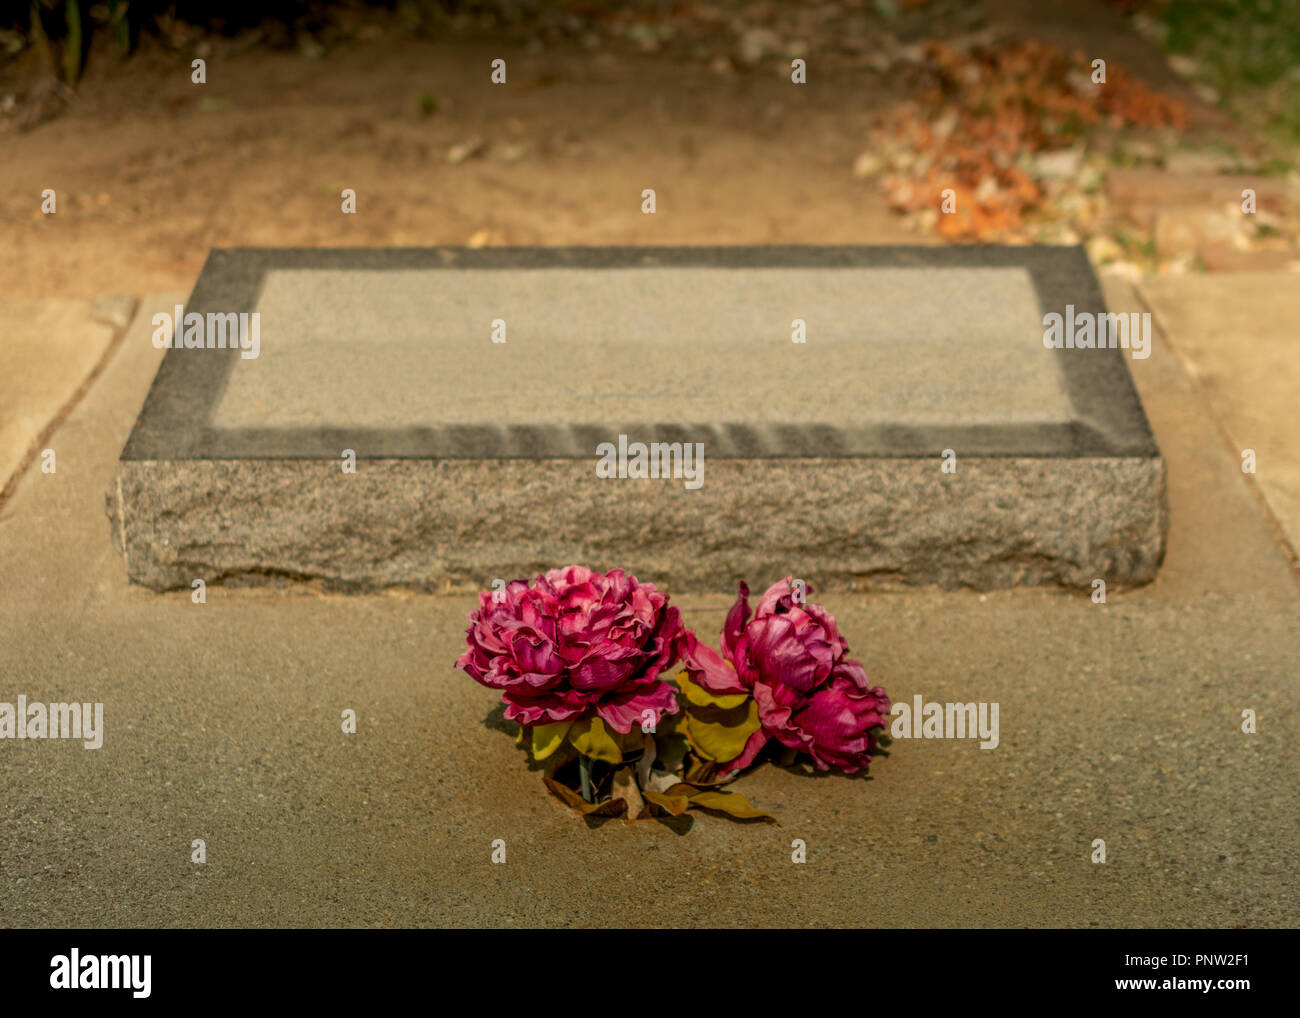 Let Be Creepy Stock Photos & Let Be Creepy Stock Images - Alamy